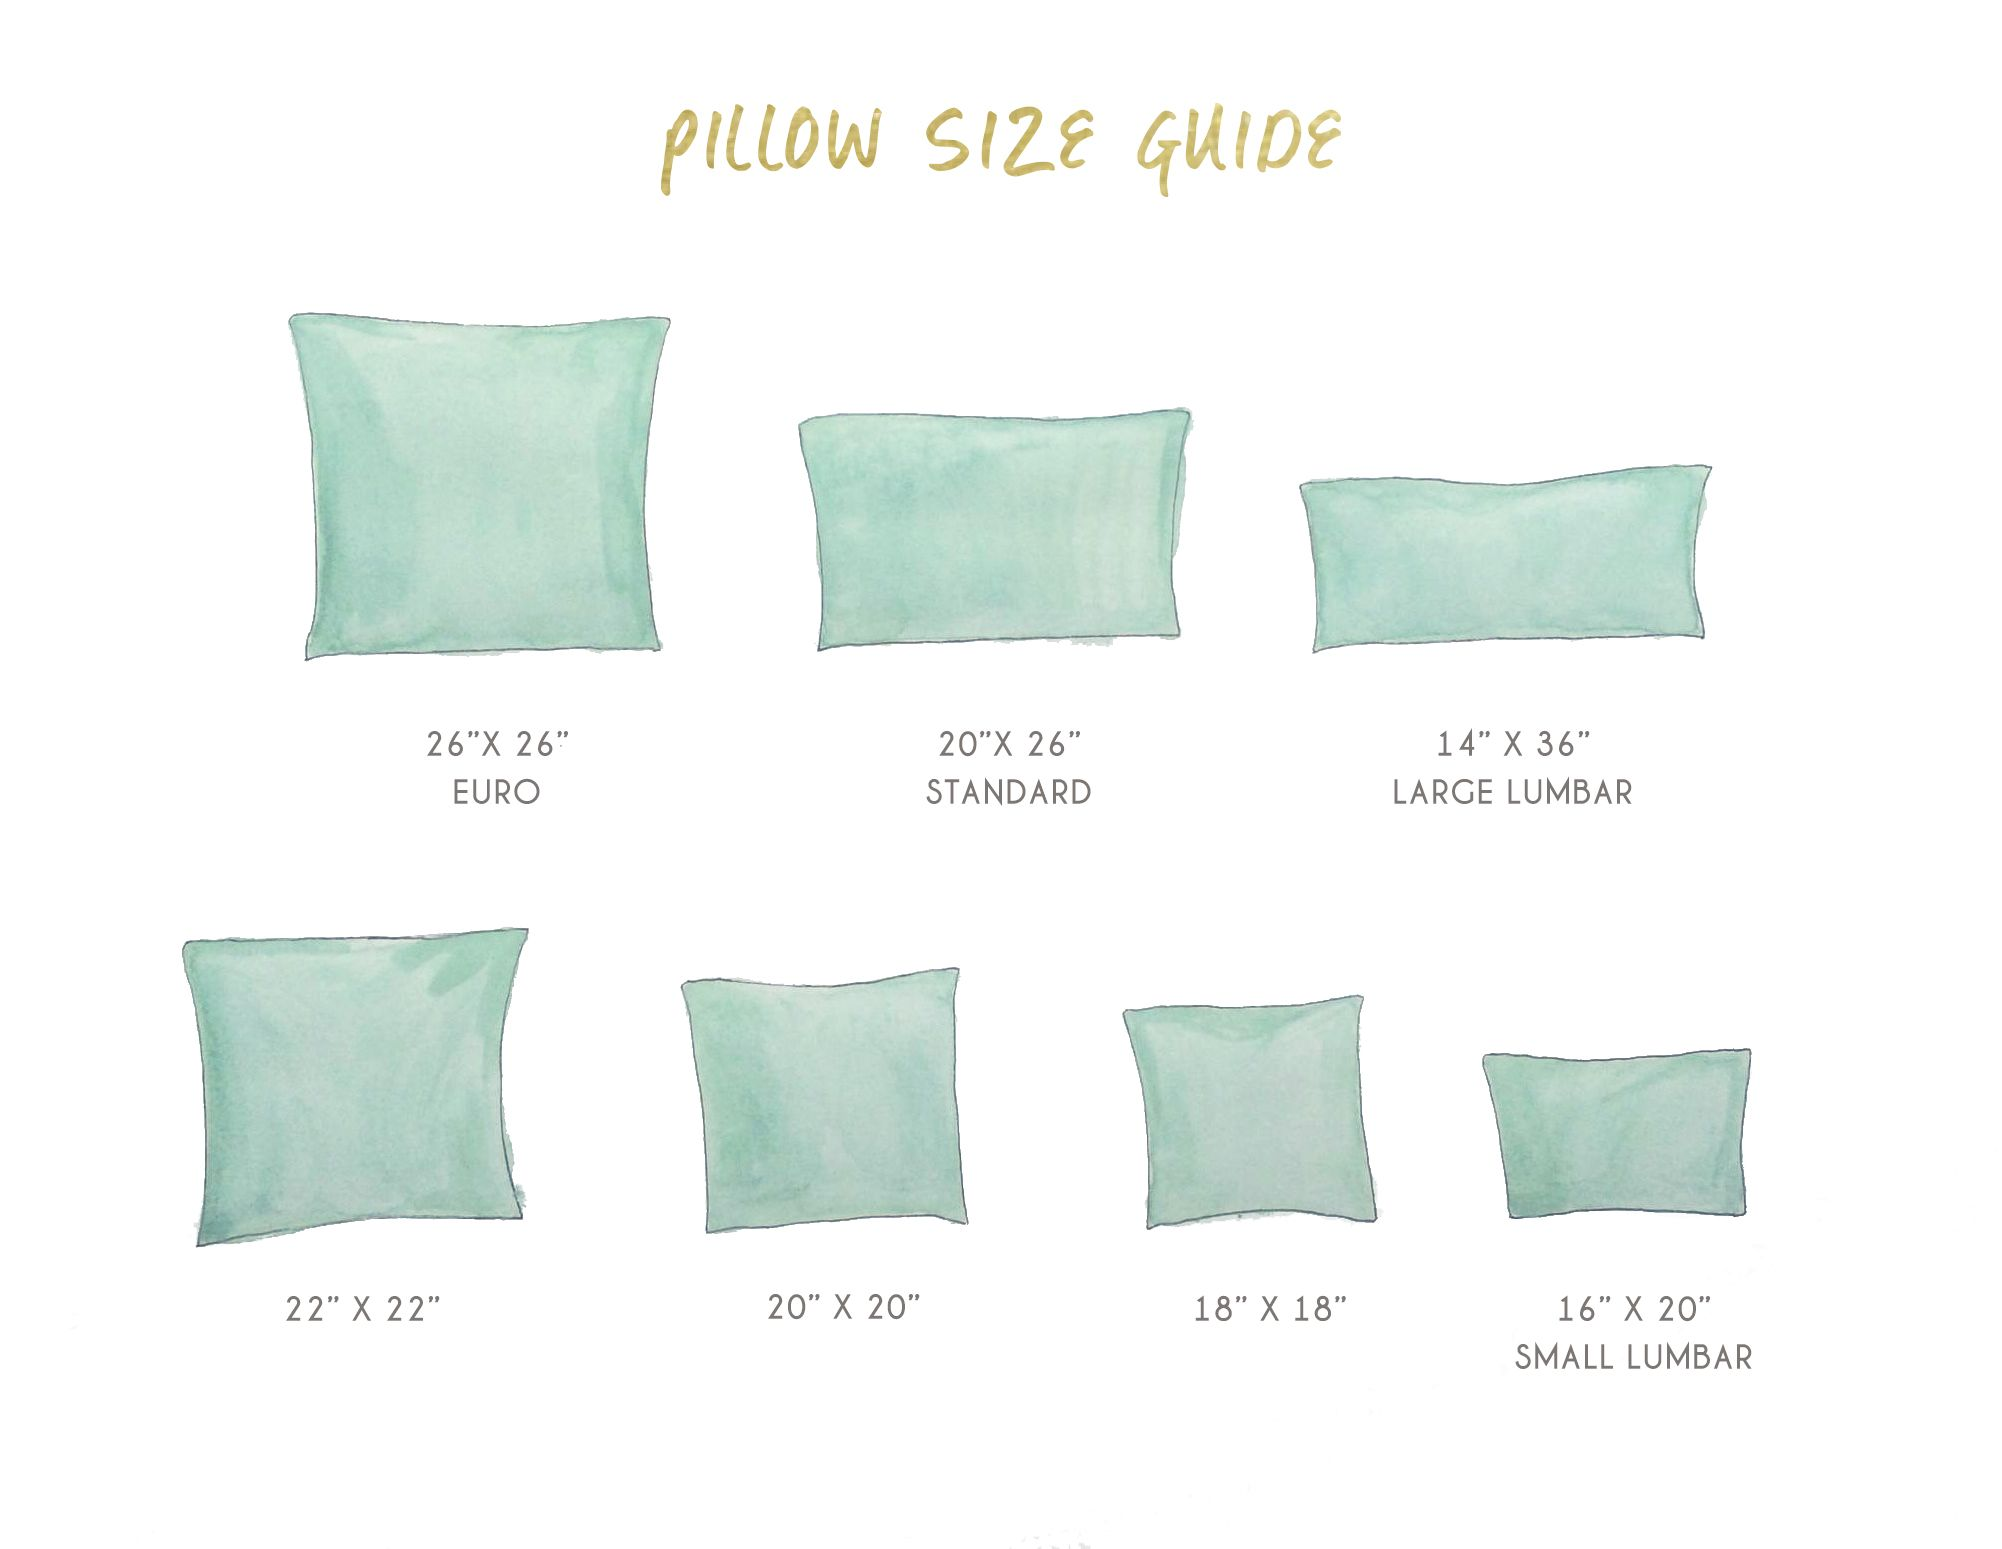 standard sofa cushion size outsunny outdoor sectional furniture set cover pillow sizes pillows 101 how to choose arrange throw